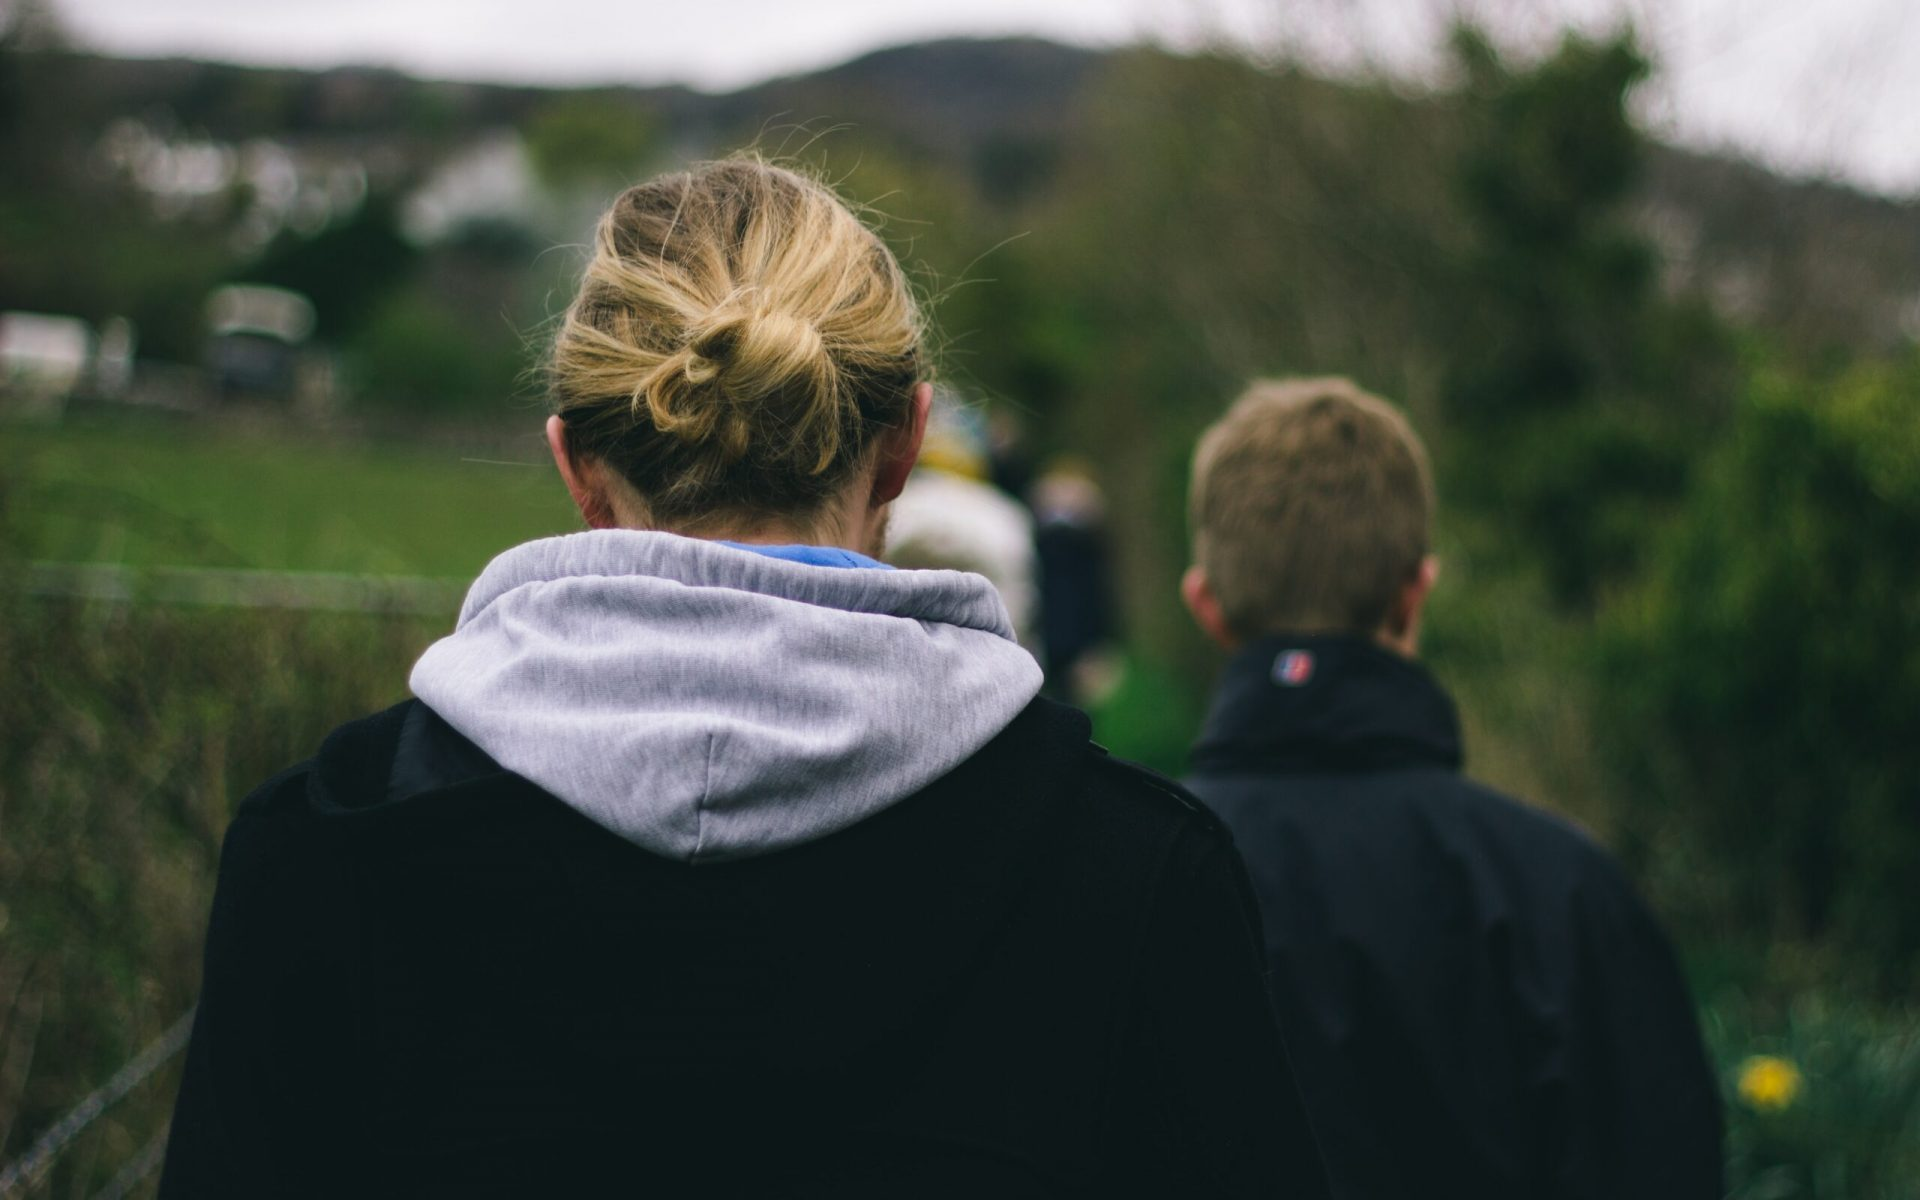 photo of two person walking during daytime